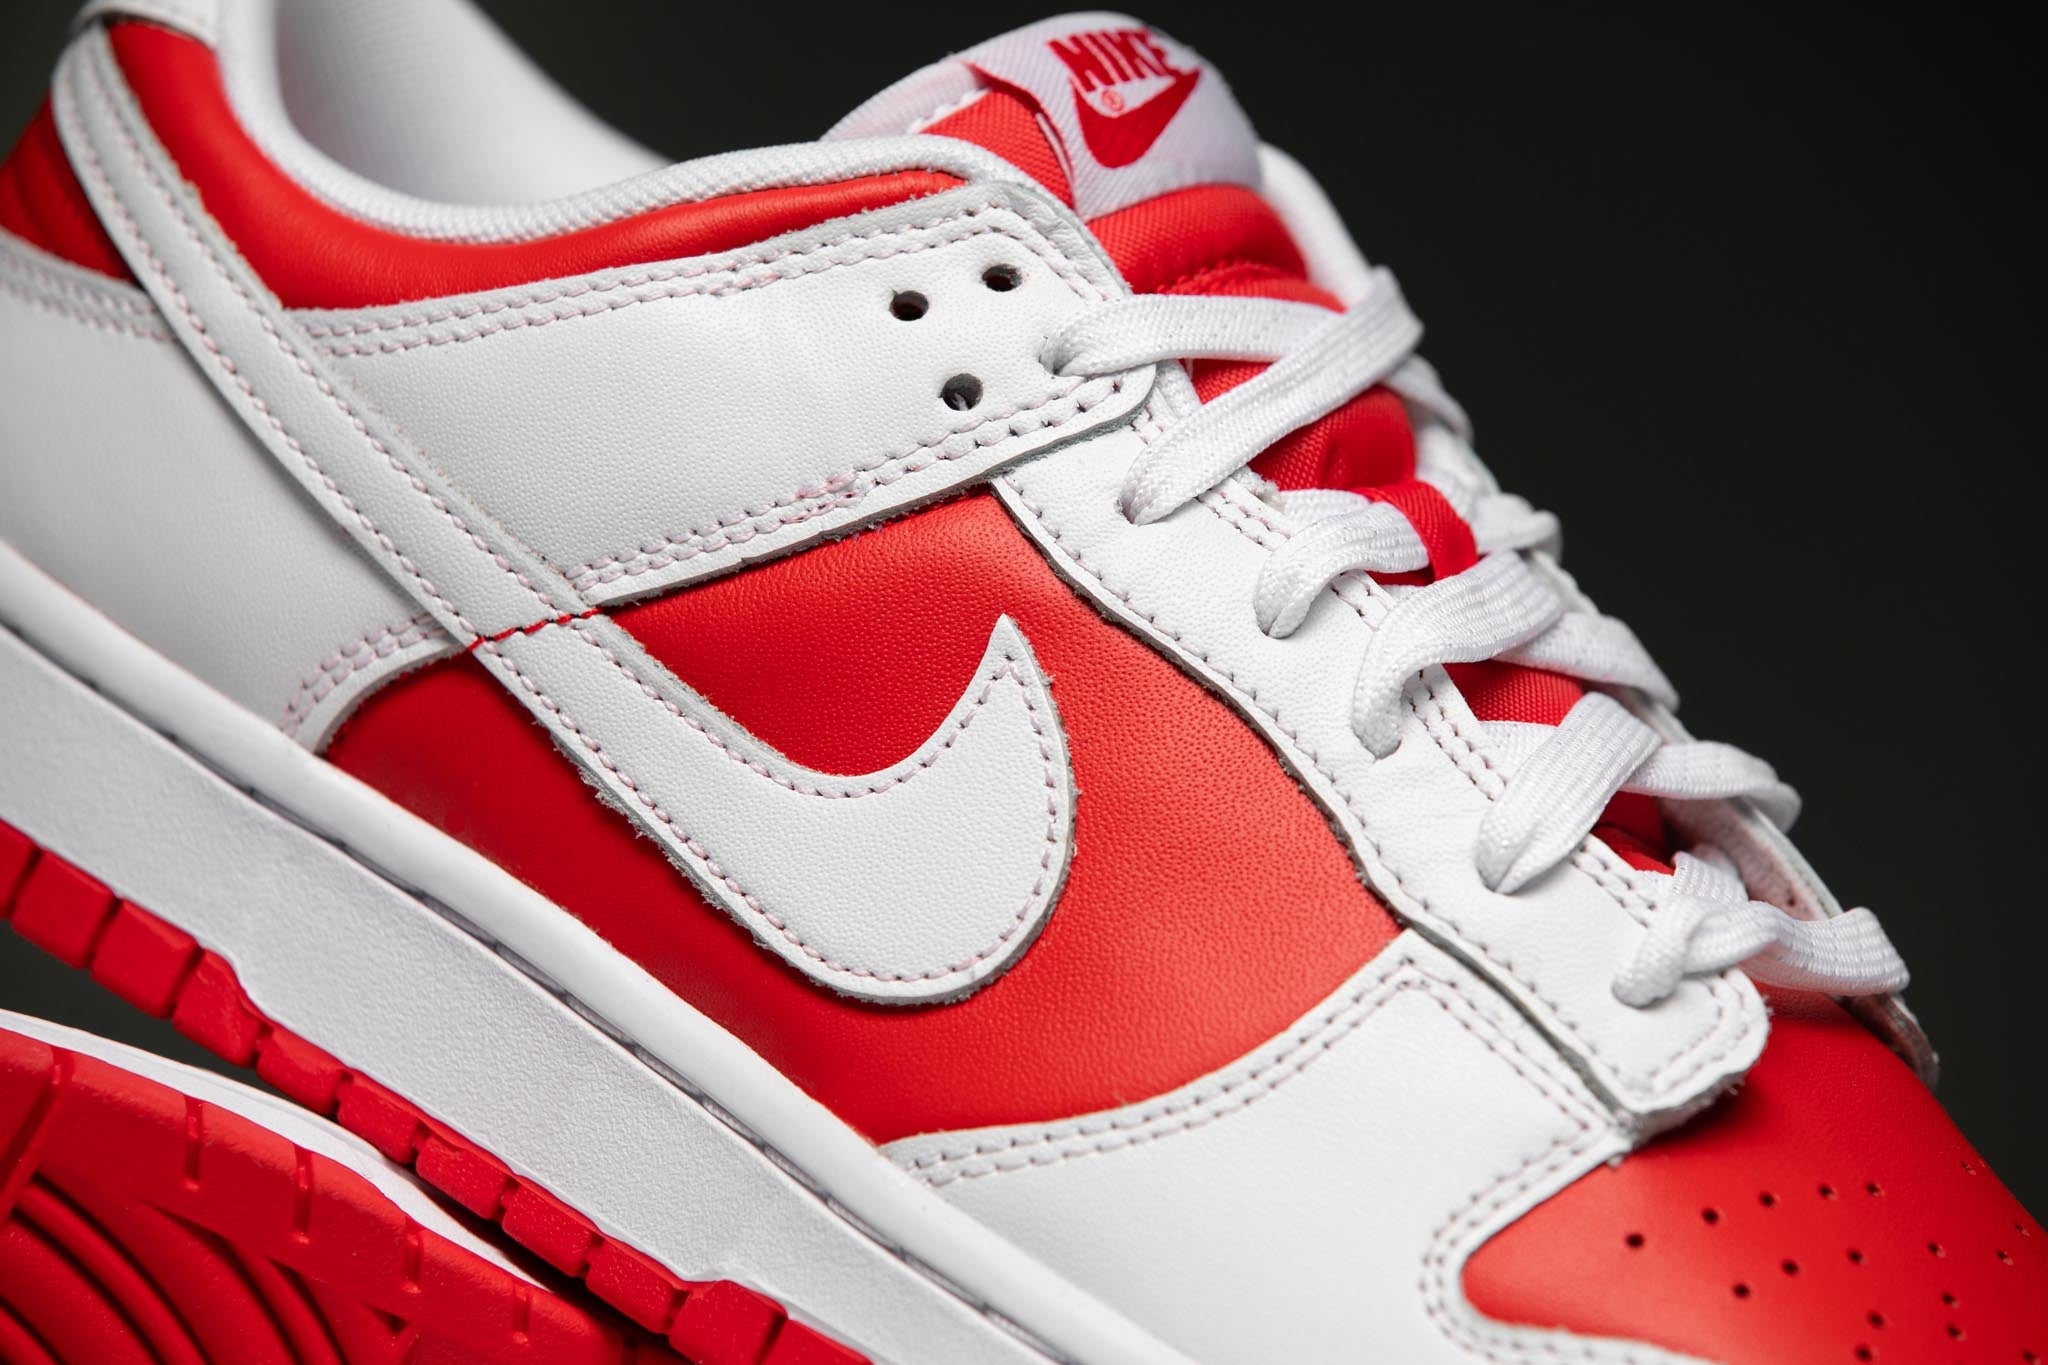 Nike Dunk Low 'Championship Red' - 2